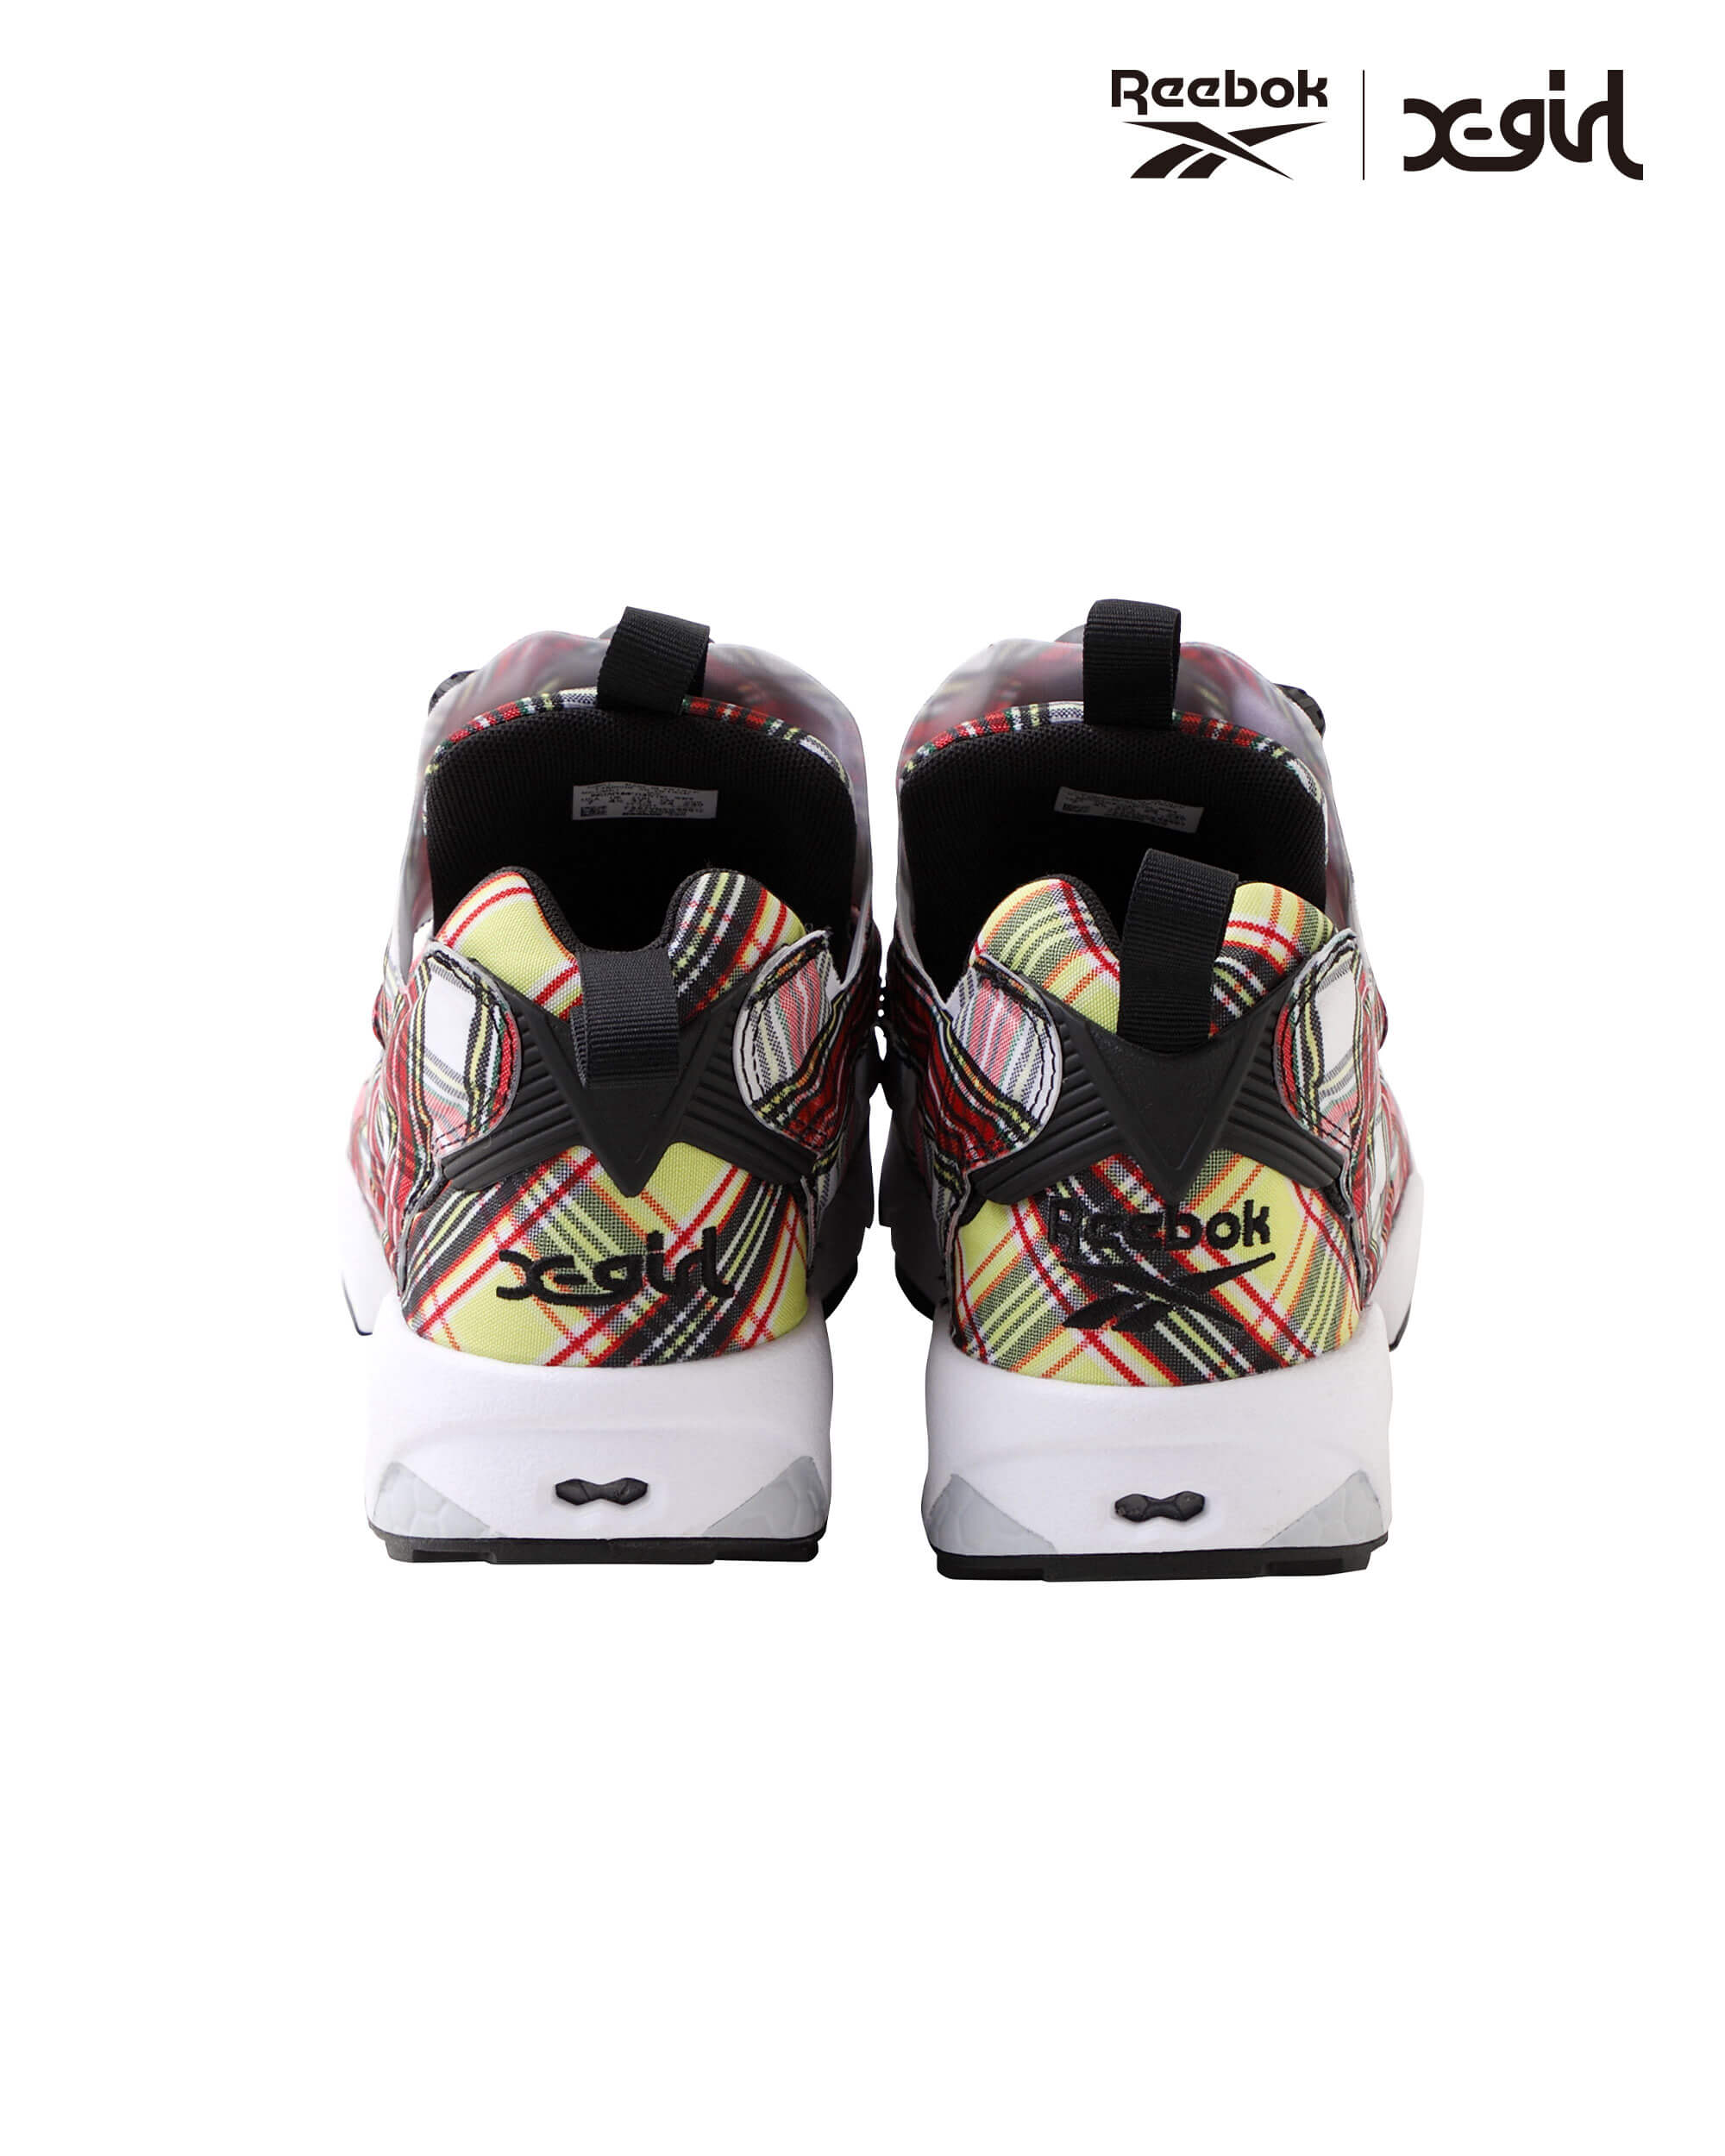 X-girl Reebok Instapump Fury Collaboration Collection 2020 エックスガール リーボック コラボ コレクション 最新 新作 インスタポンプフューリー sneaker back